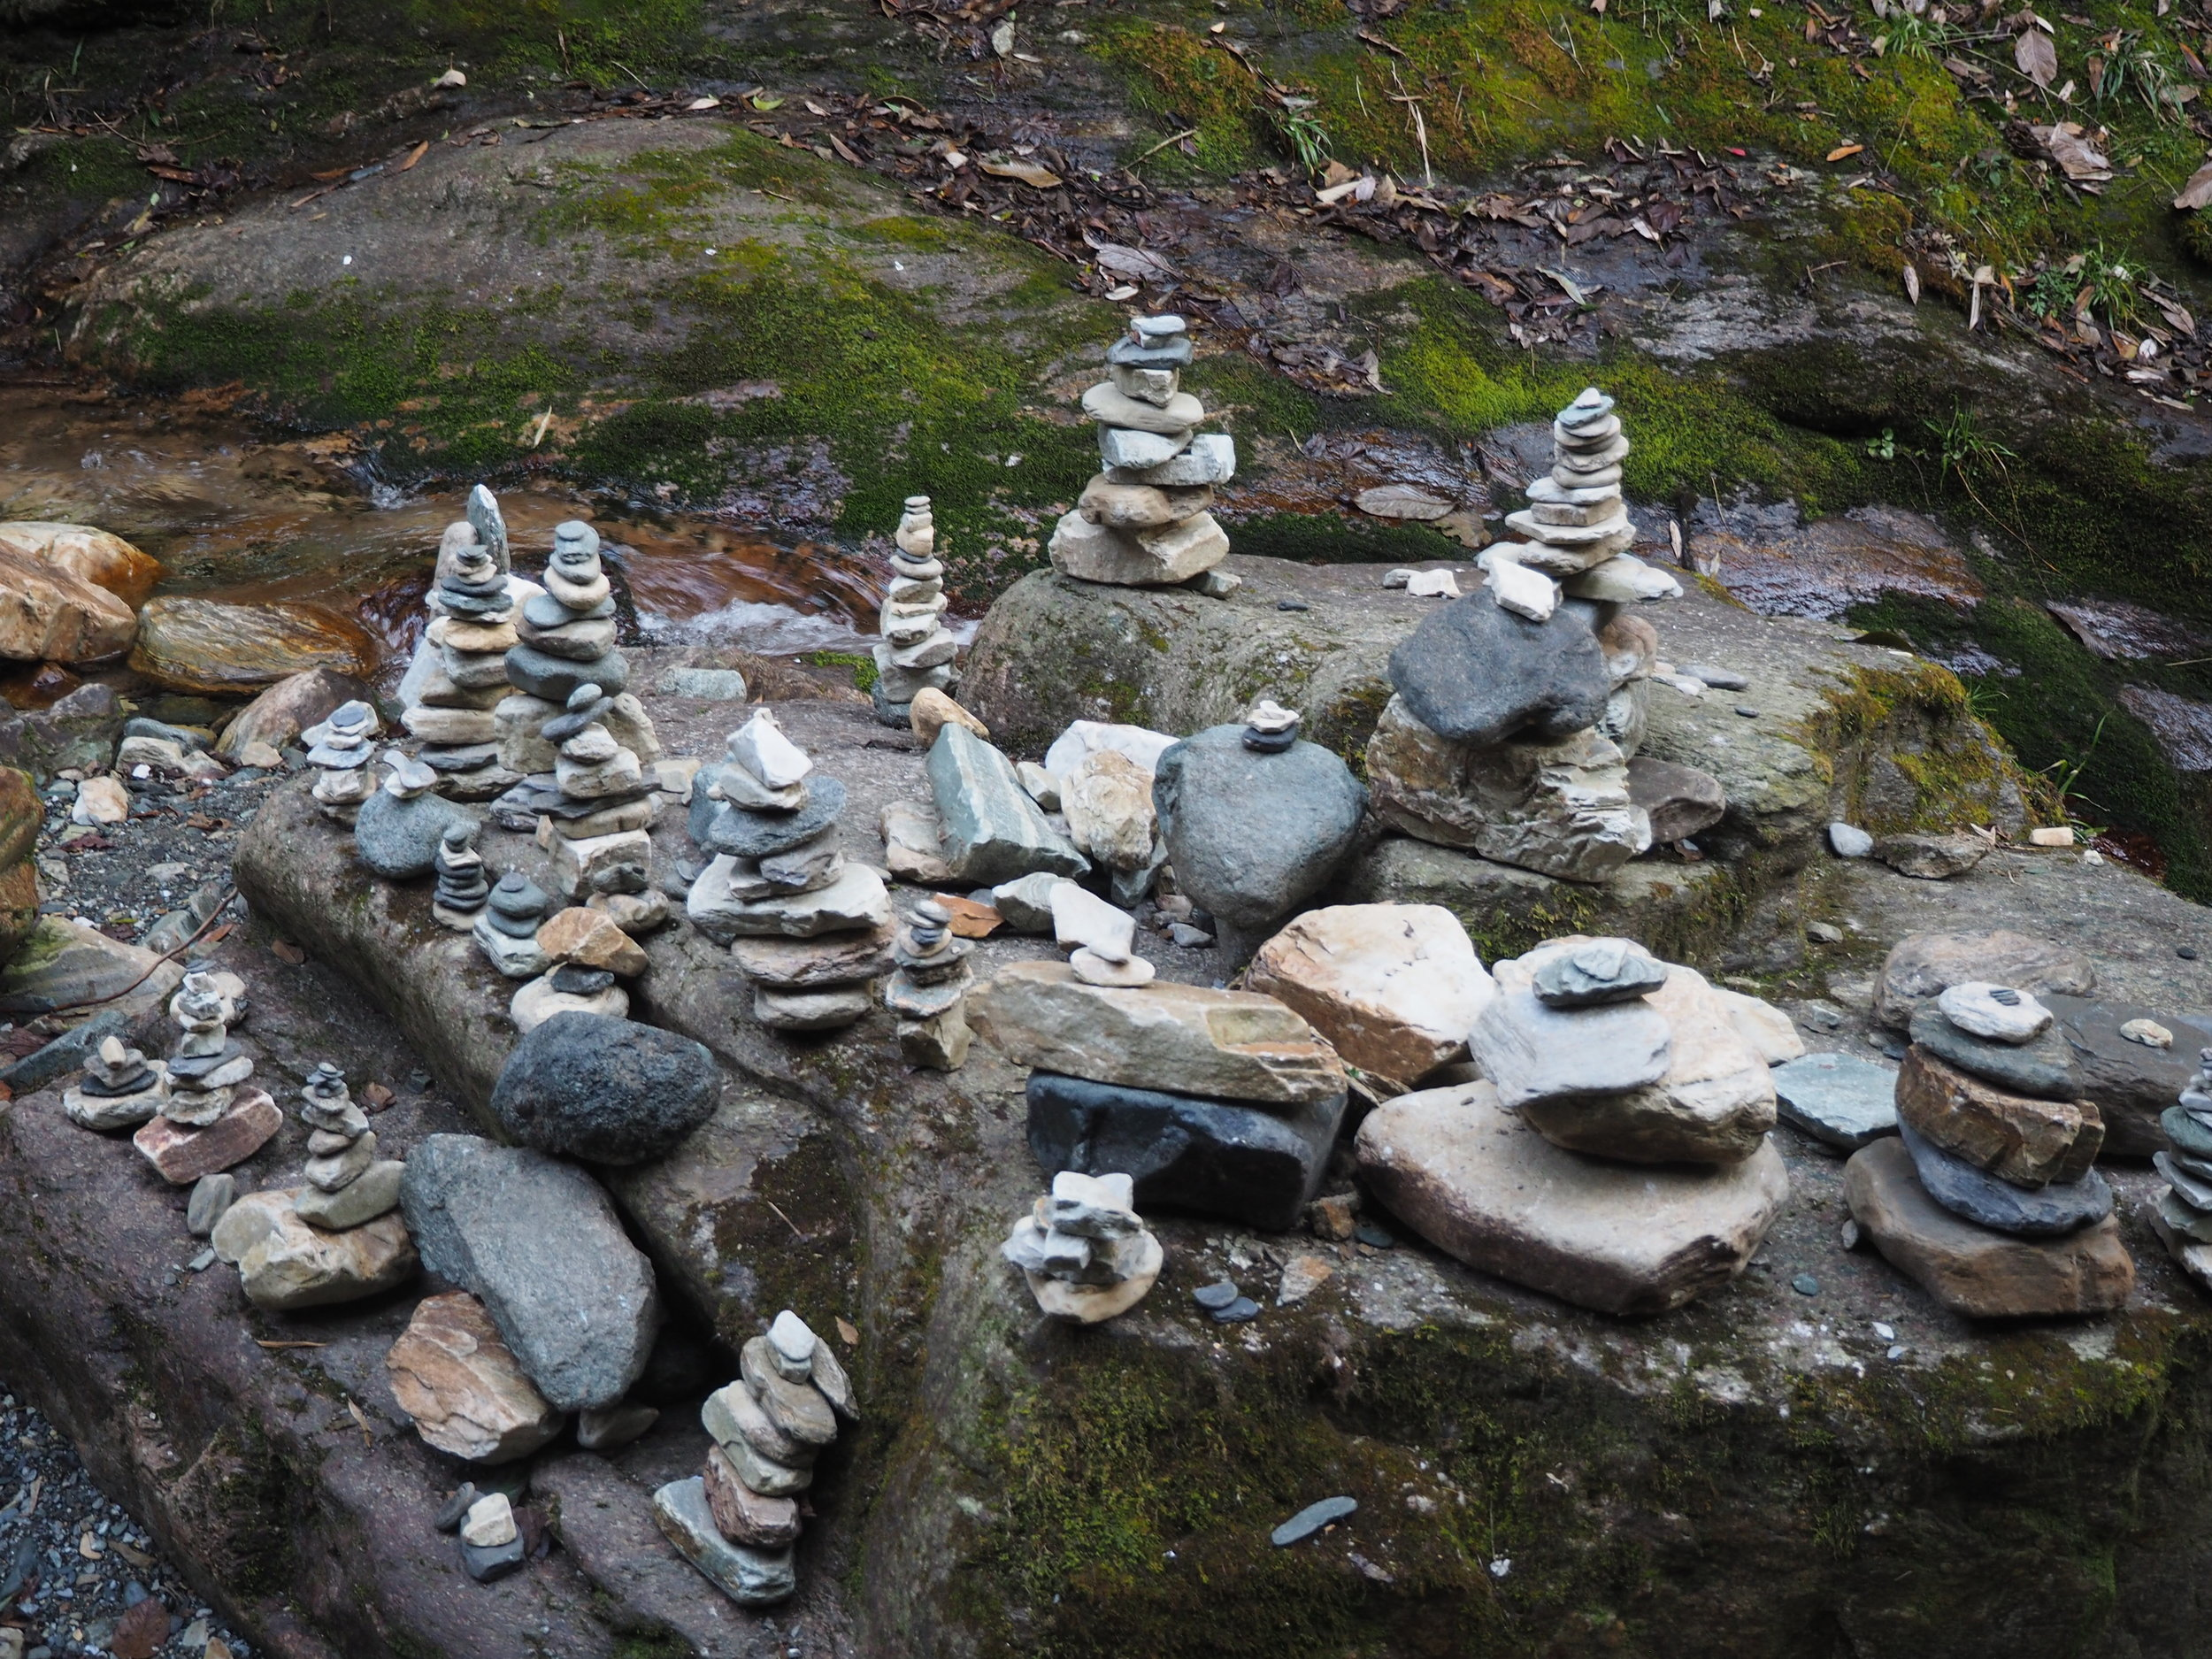 Cairn Stones in the lush rhododendron forests lower down the Annapurna Circuit trail.